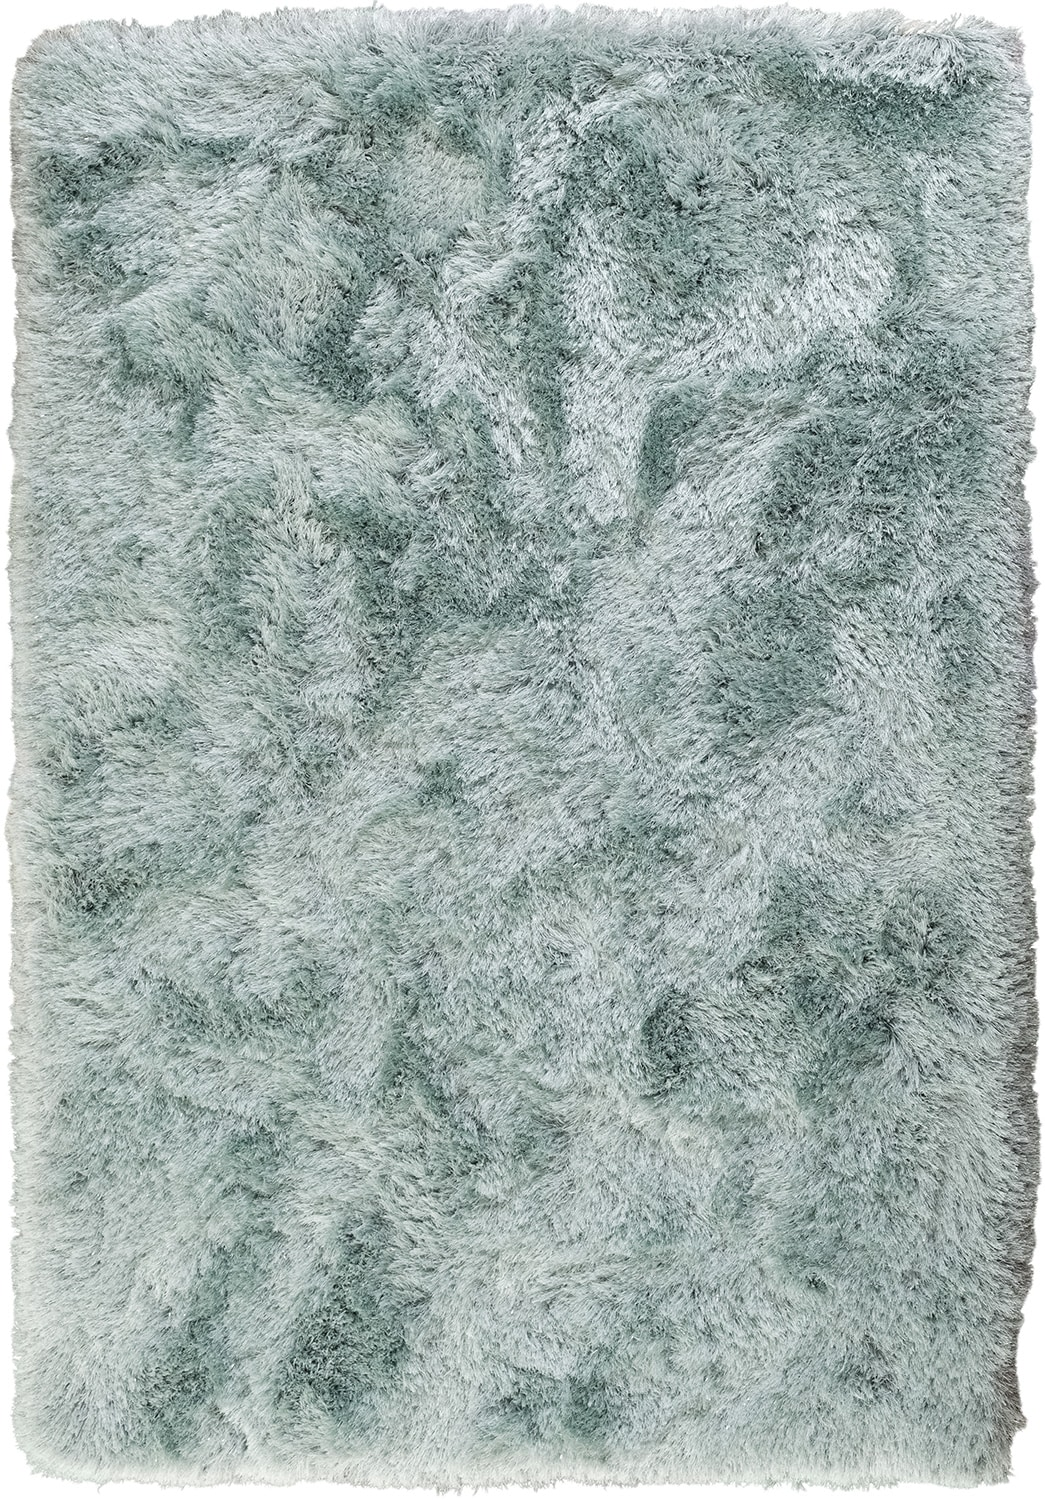 Rugs - Sparkle Aquamarine Area Rug – 5' x 8'